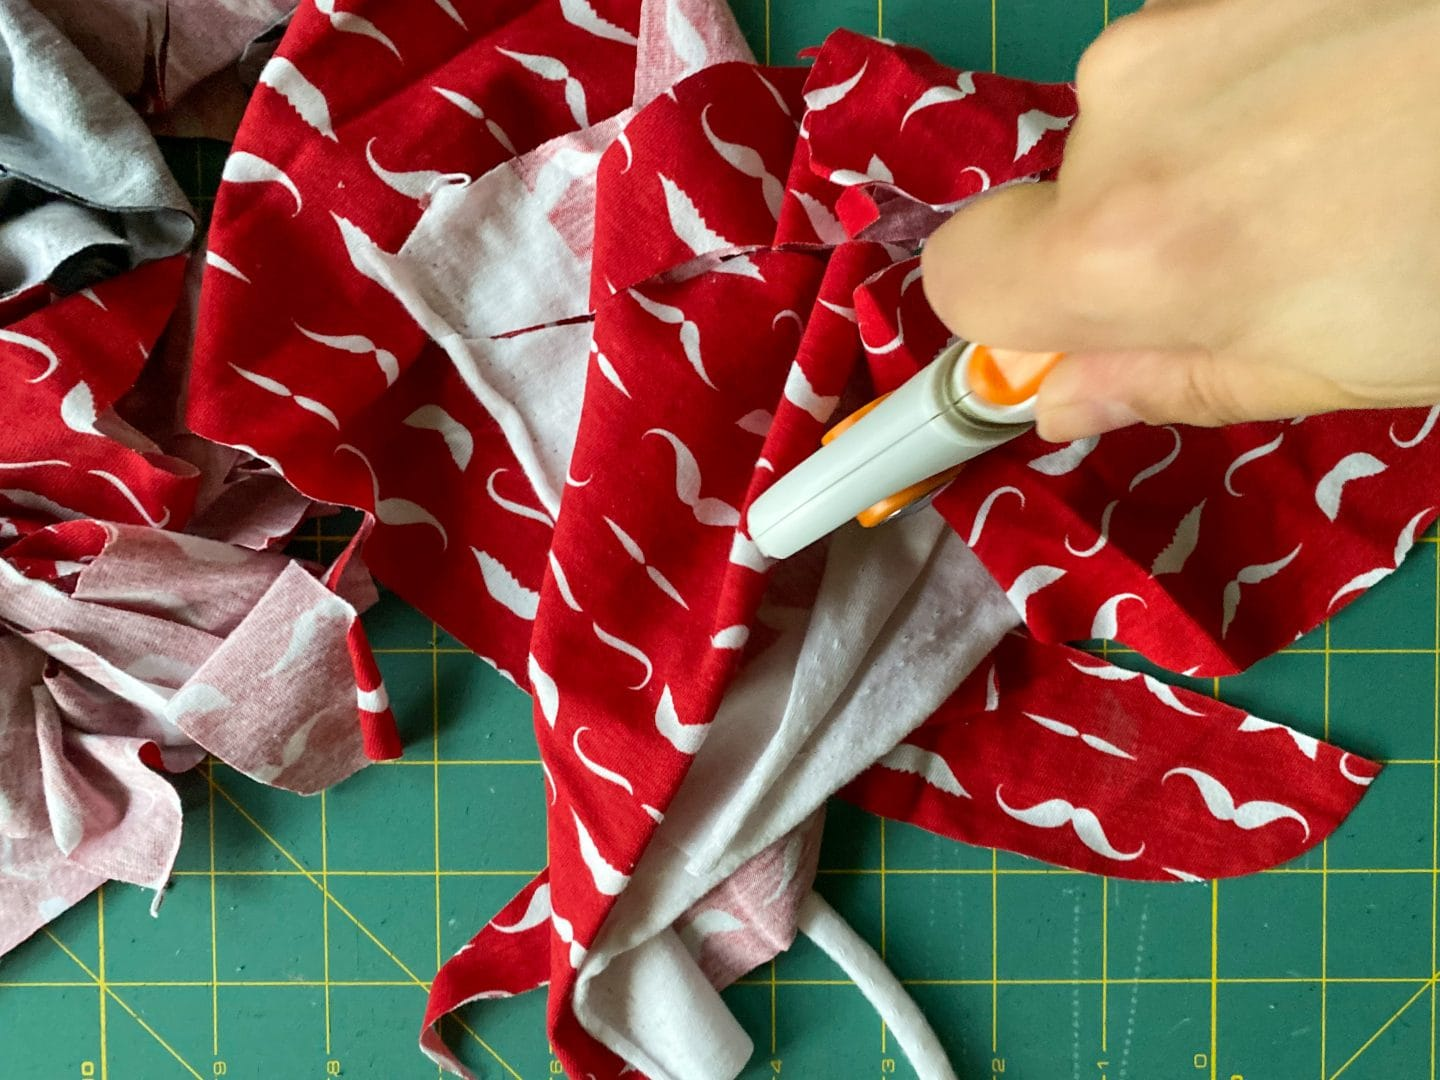 Image of fabric scraps being shredded with a rotary cutter